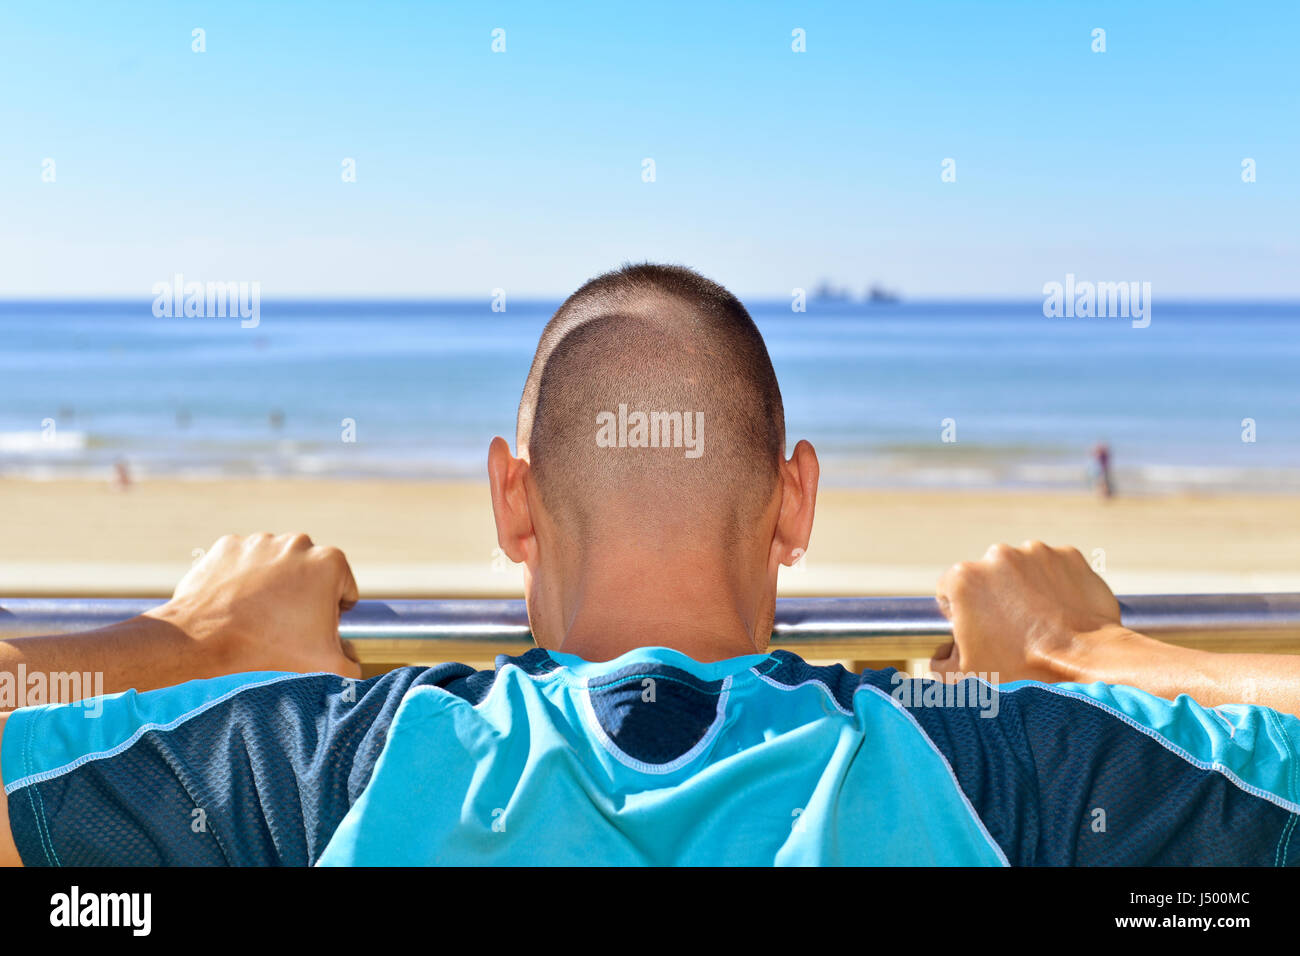 closeup of a young caucasian sportsman in sport clothes seen from behind doing incline push-ups in a metal bar outdoors, - Stock Image